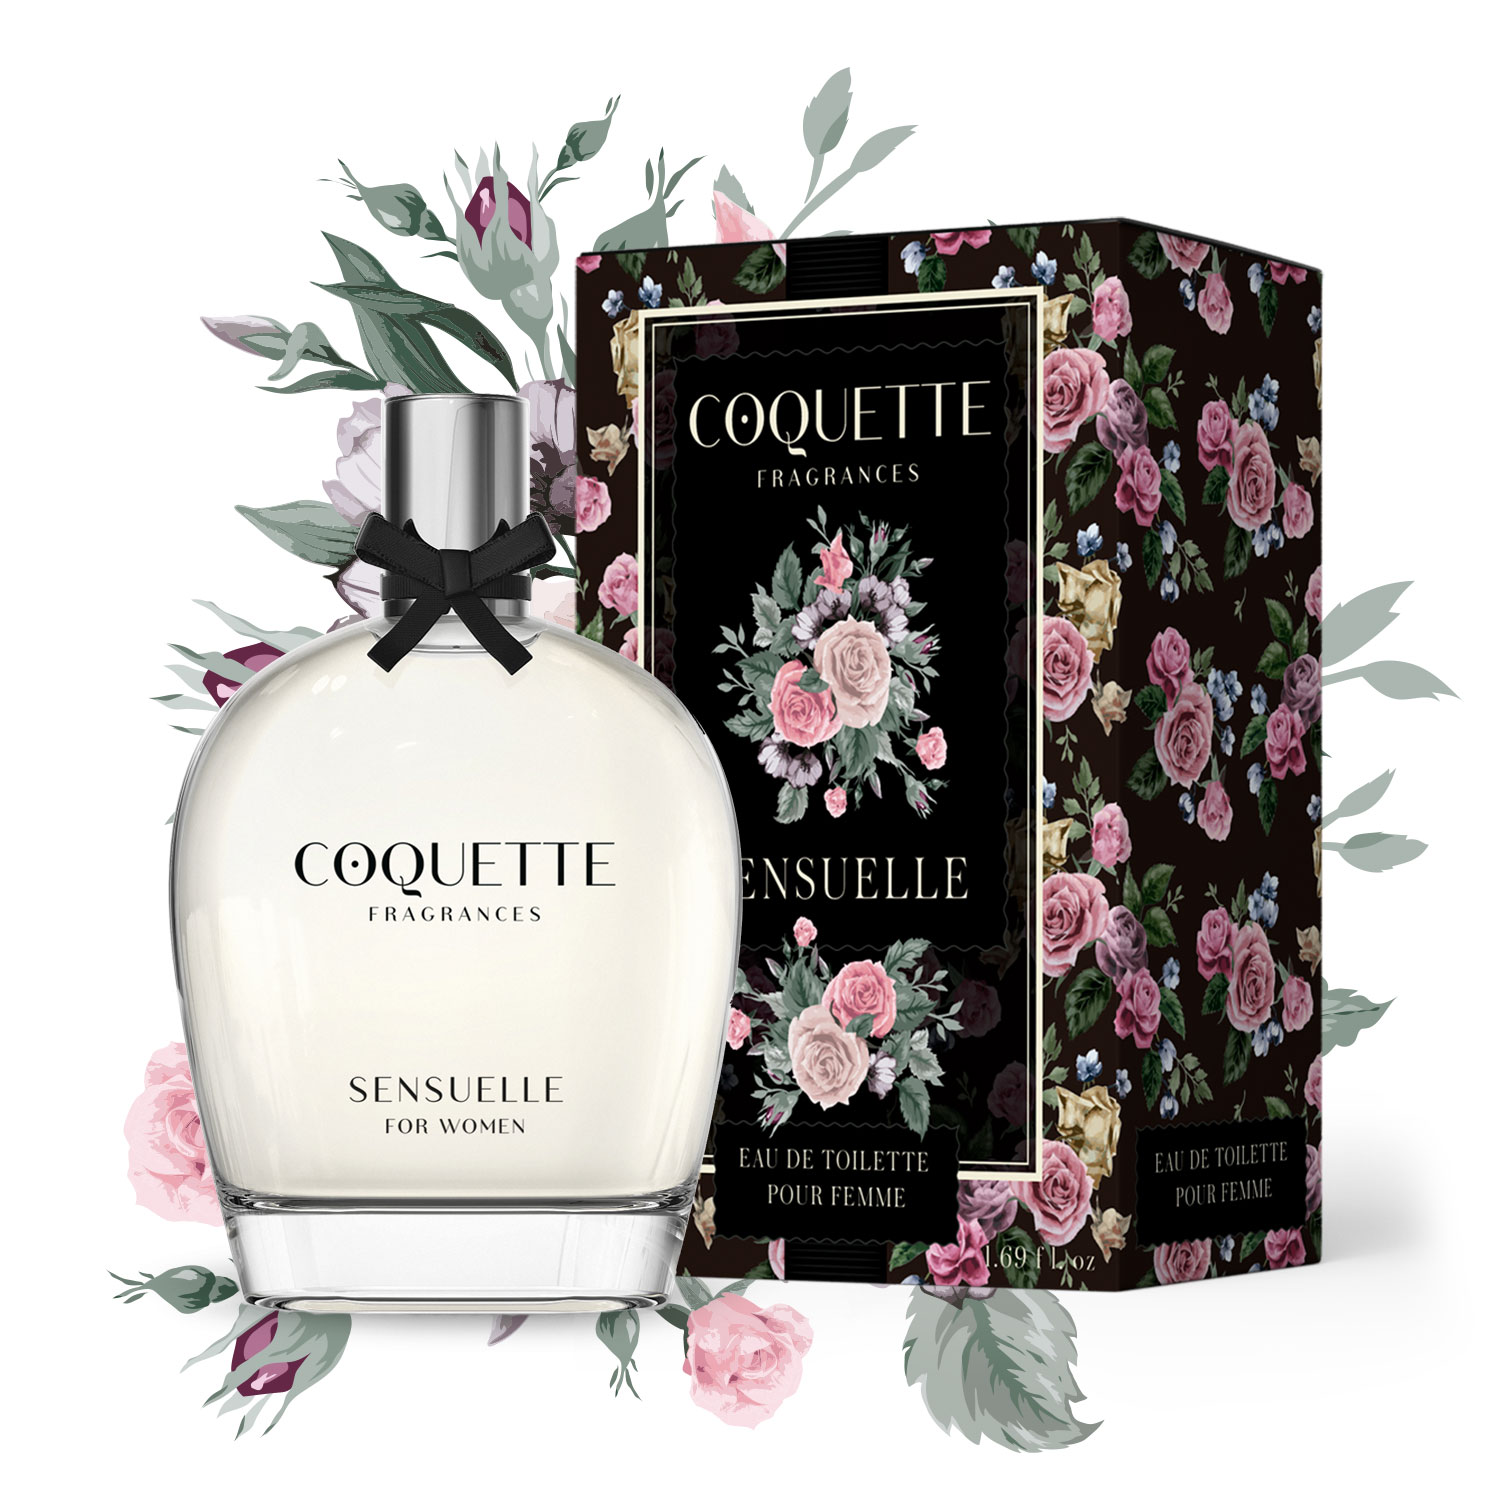 Coquette-EDT-Fragrances-Sensuelle-Magasalfa-